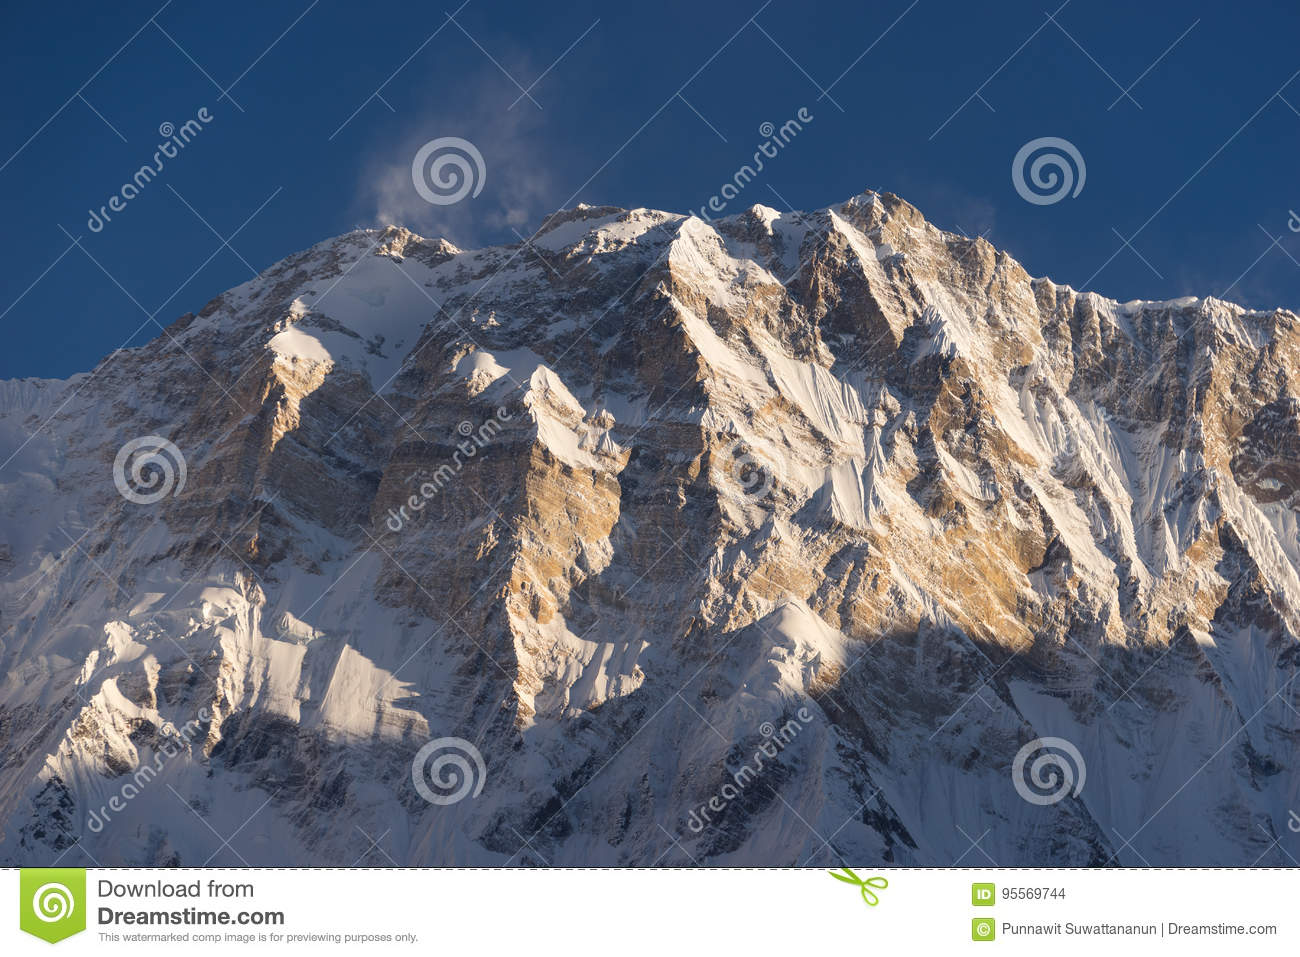 Annapurna I mountain peak at sunset, world 10th highest peak, AB